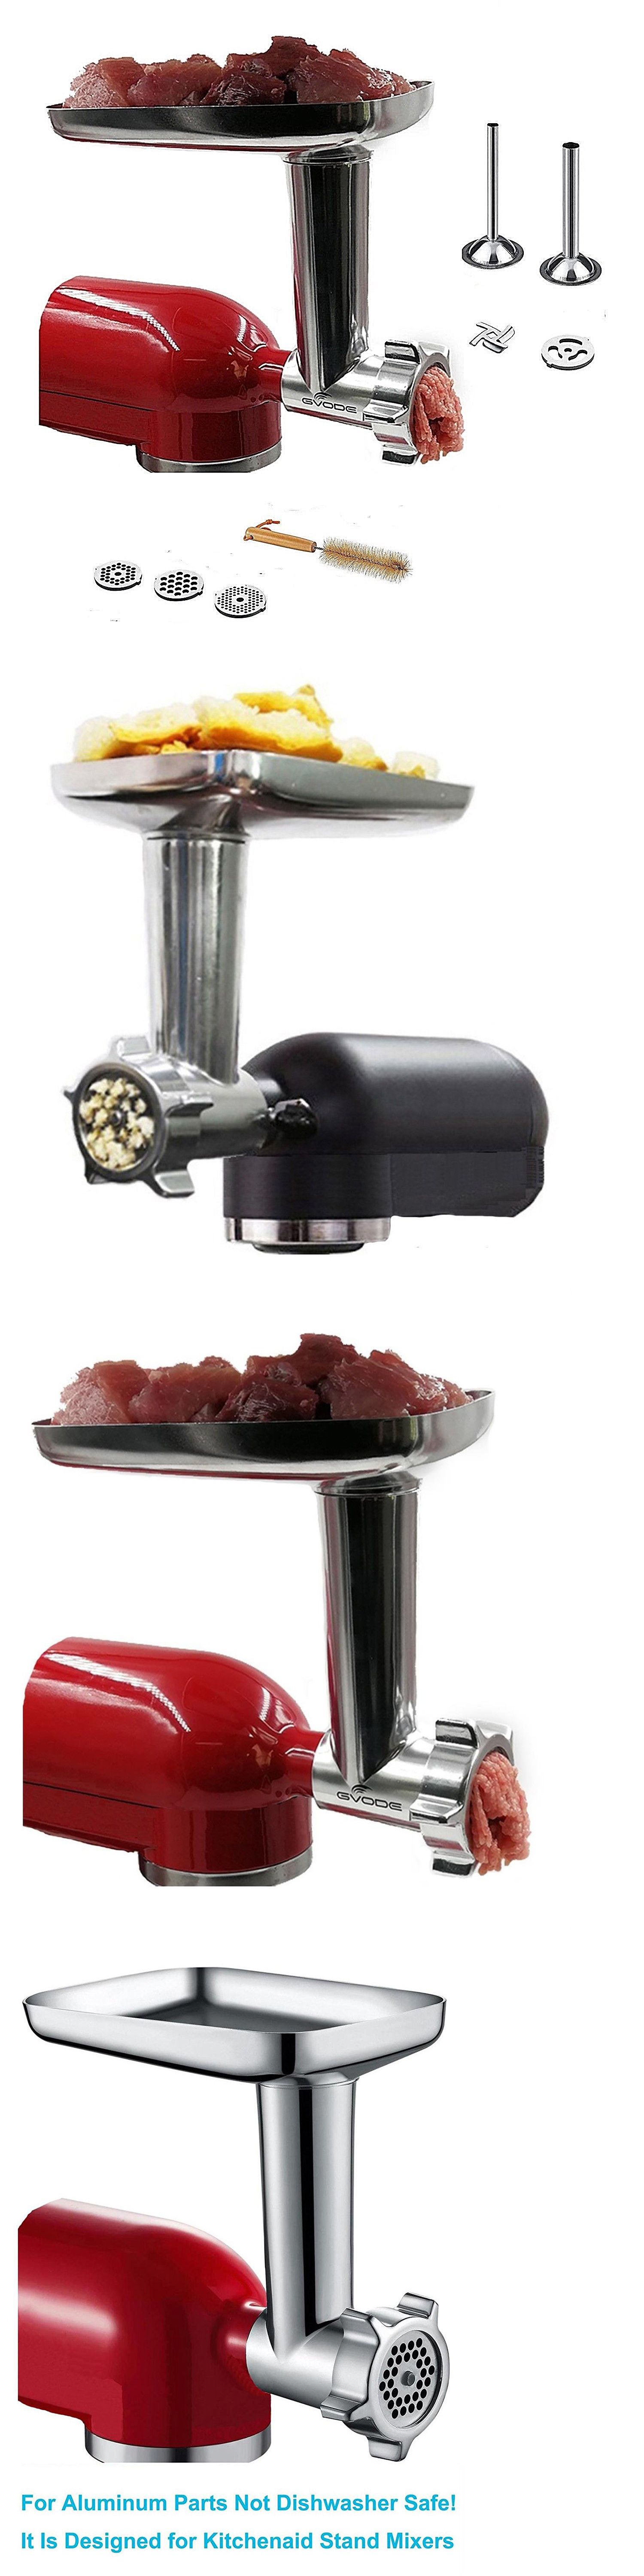 Meat Grinders 66751 Food Meat Grinder Attachment For Kitchenaid